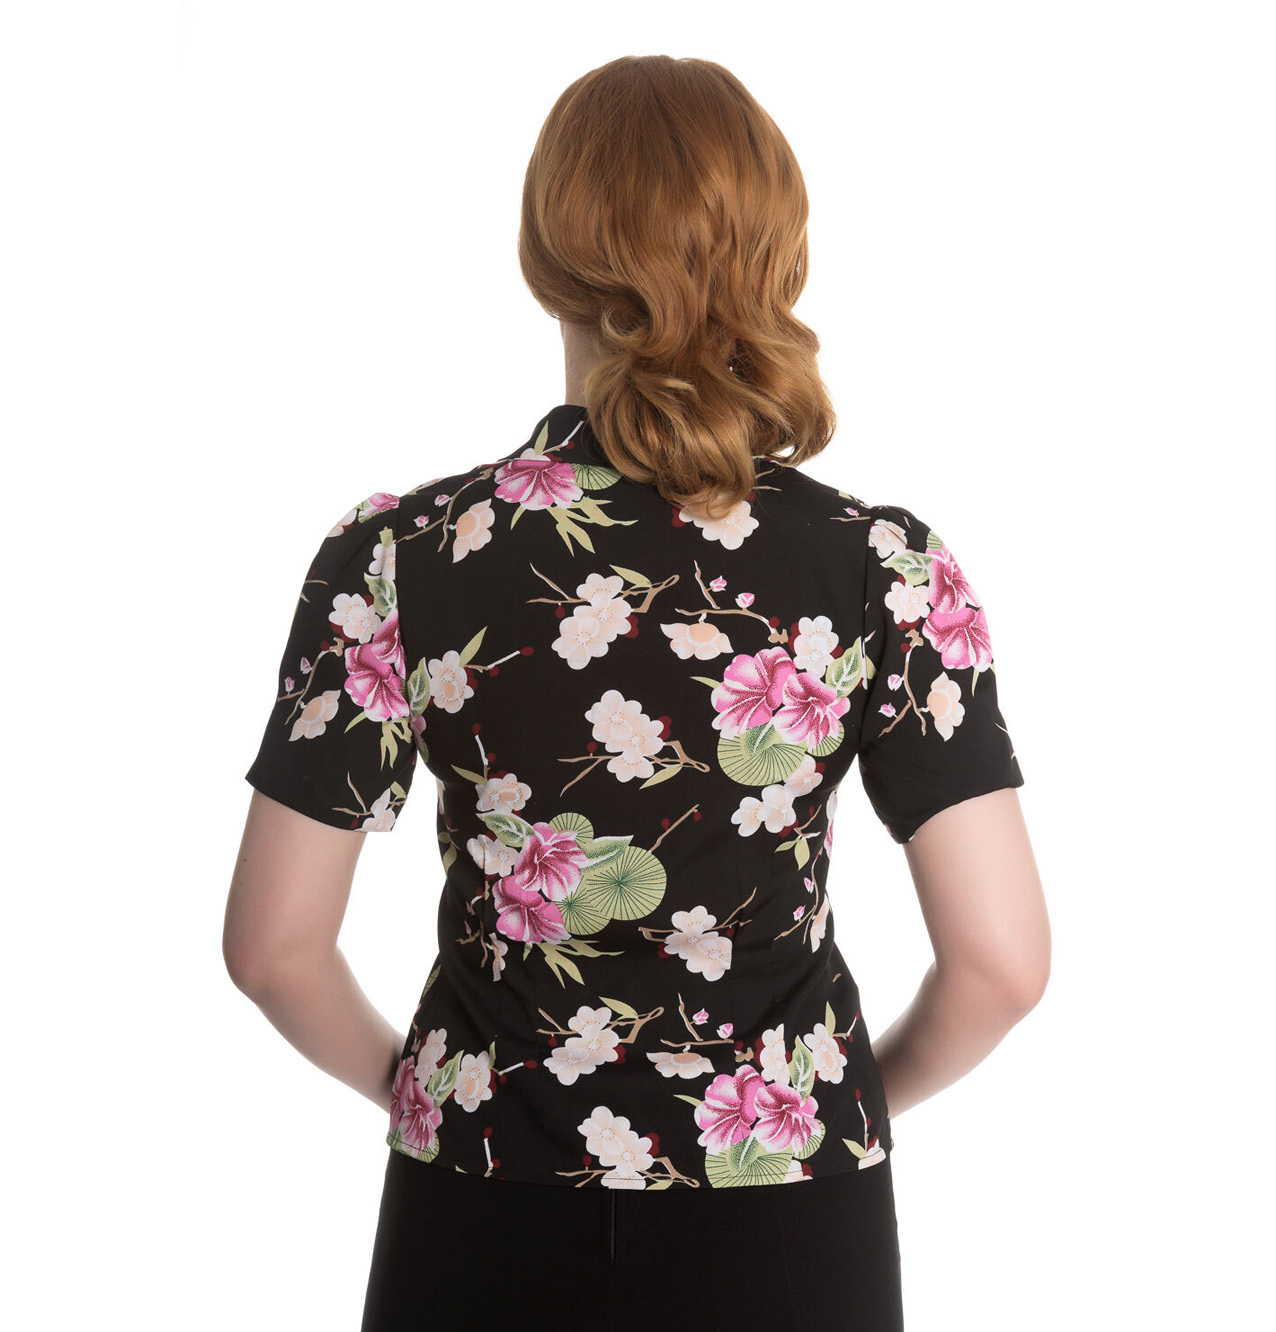 Hell-Bunny-Shirt-Top-40s-50s-Black-FREYA-Pink-Flowers-Floral-Blouse-All-Sizes thumbnail 5